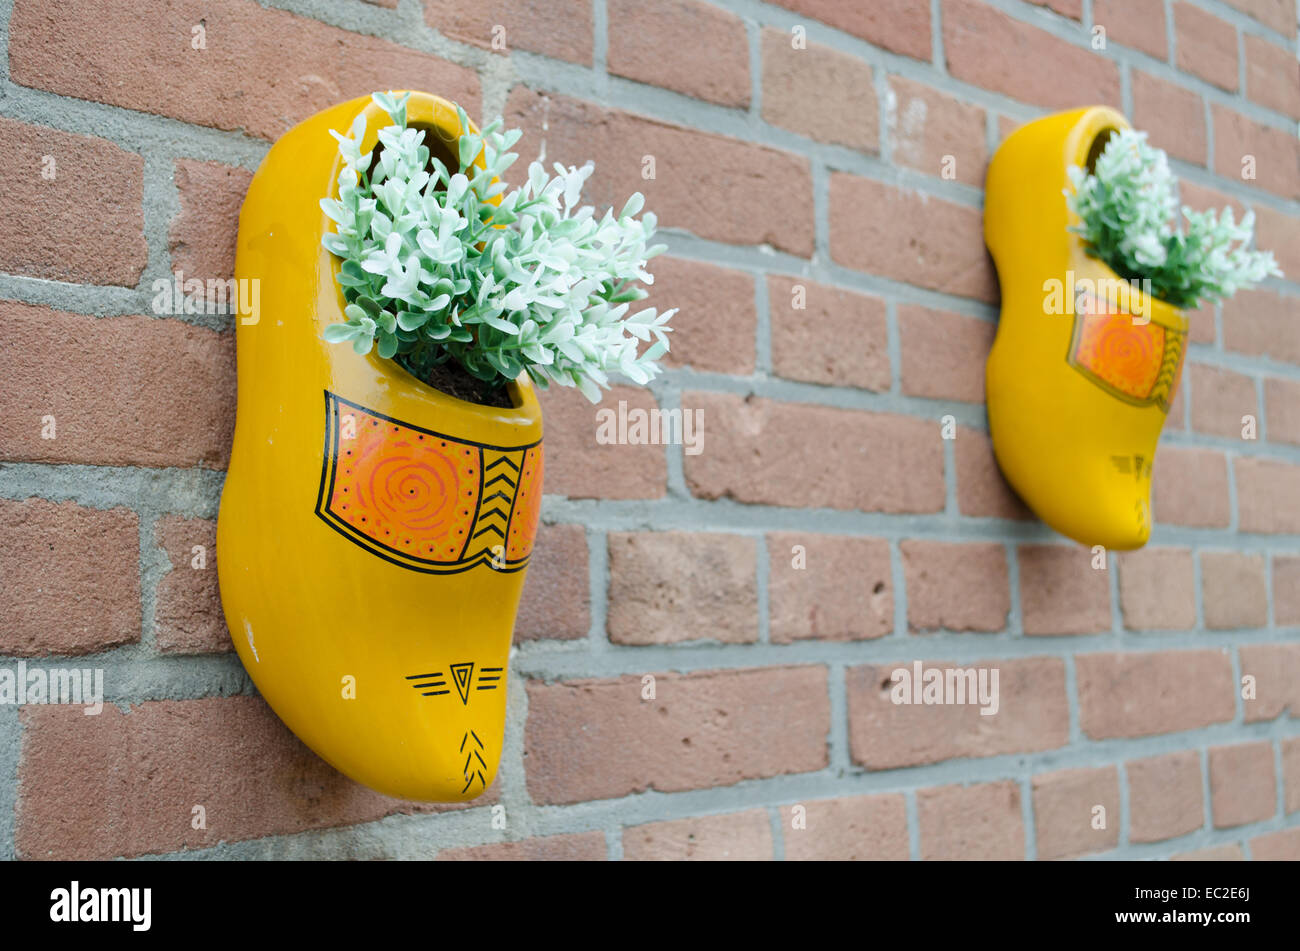 Dutch wooden shoes hanging on the wall - Stock Image